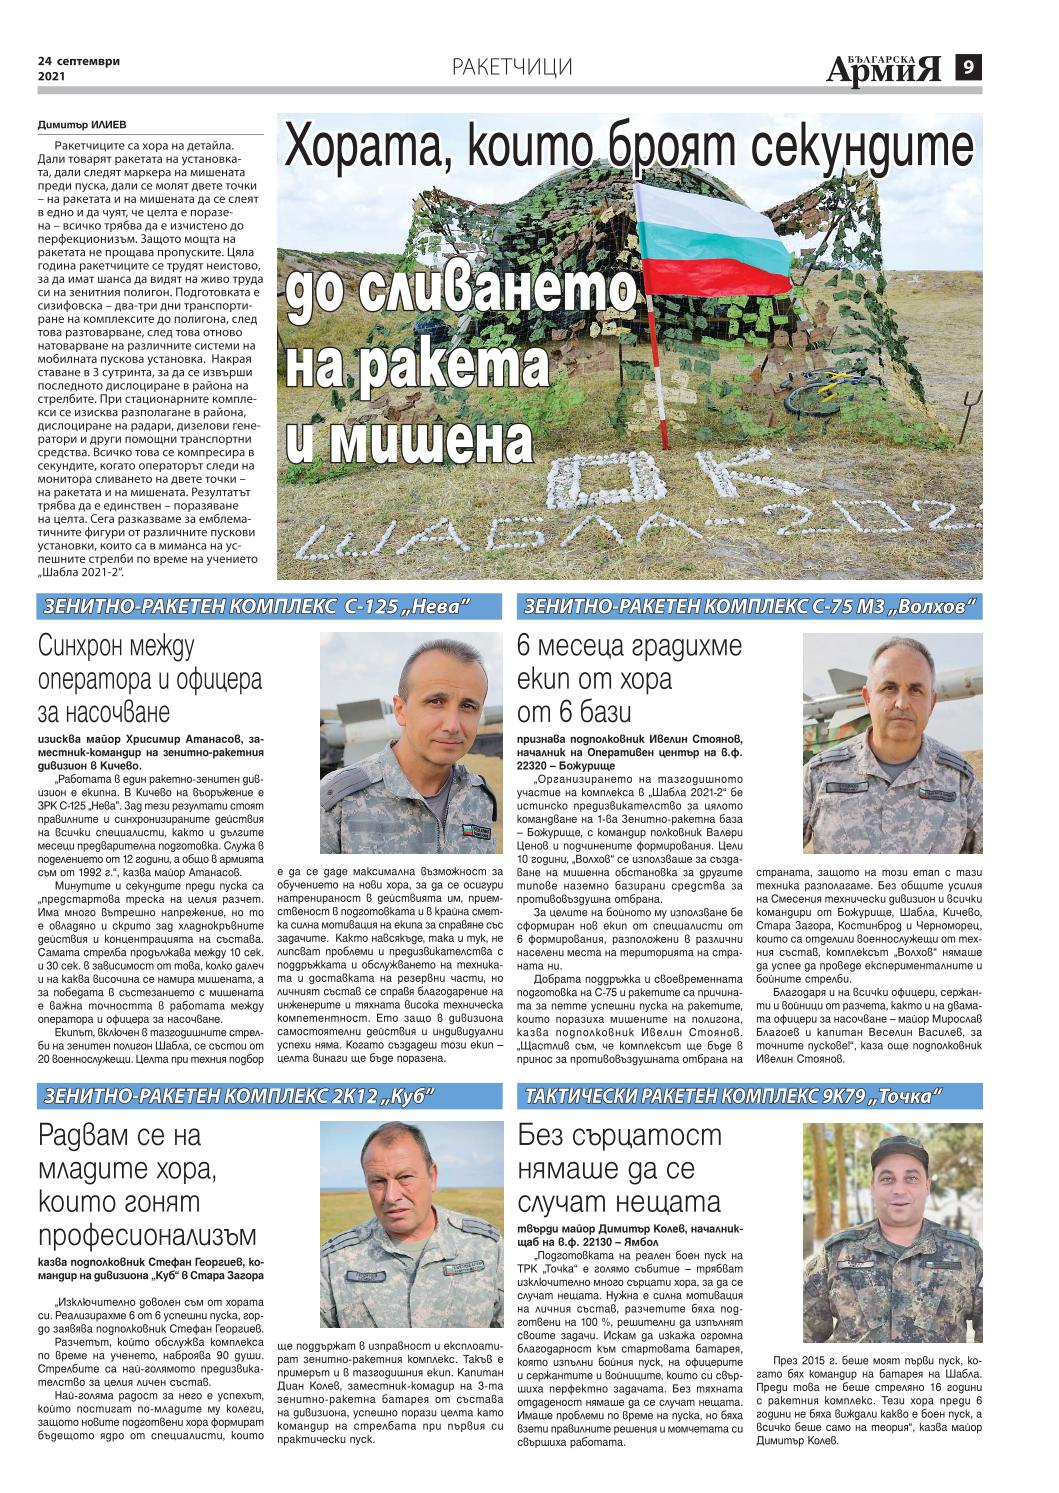 https://armymedia.bg/wp-content/uploads/2021/09/09.page1_-3.jpg